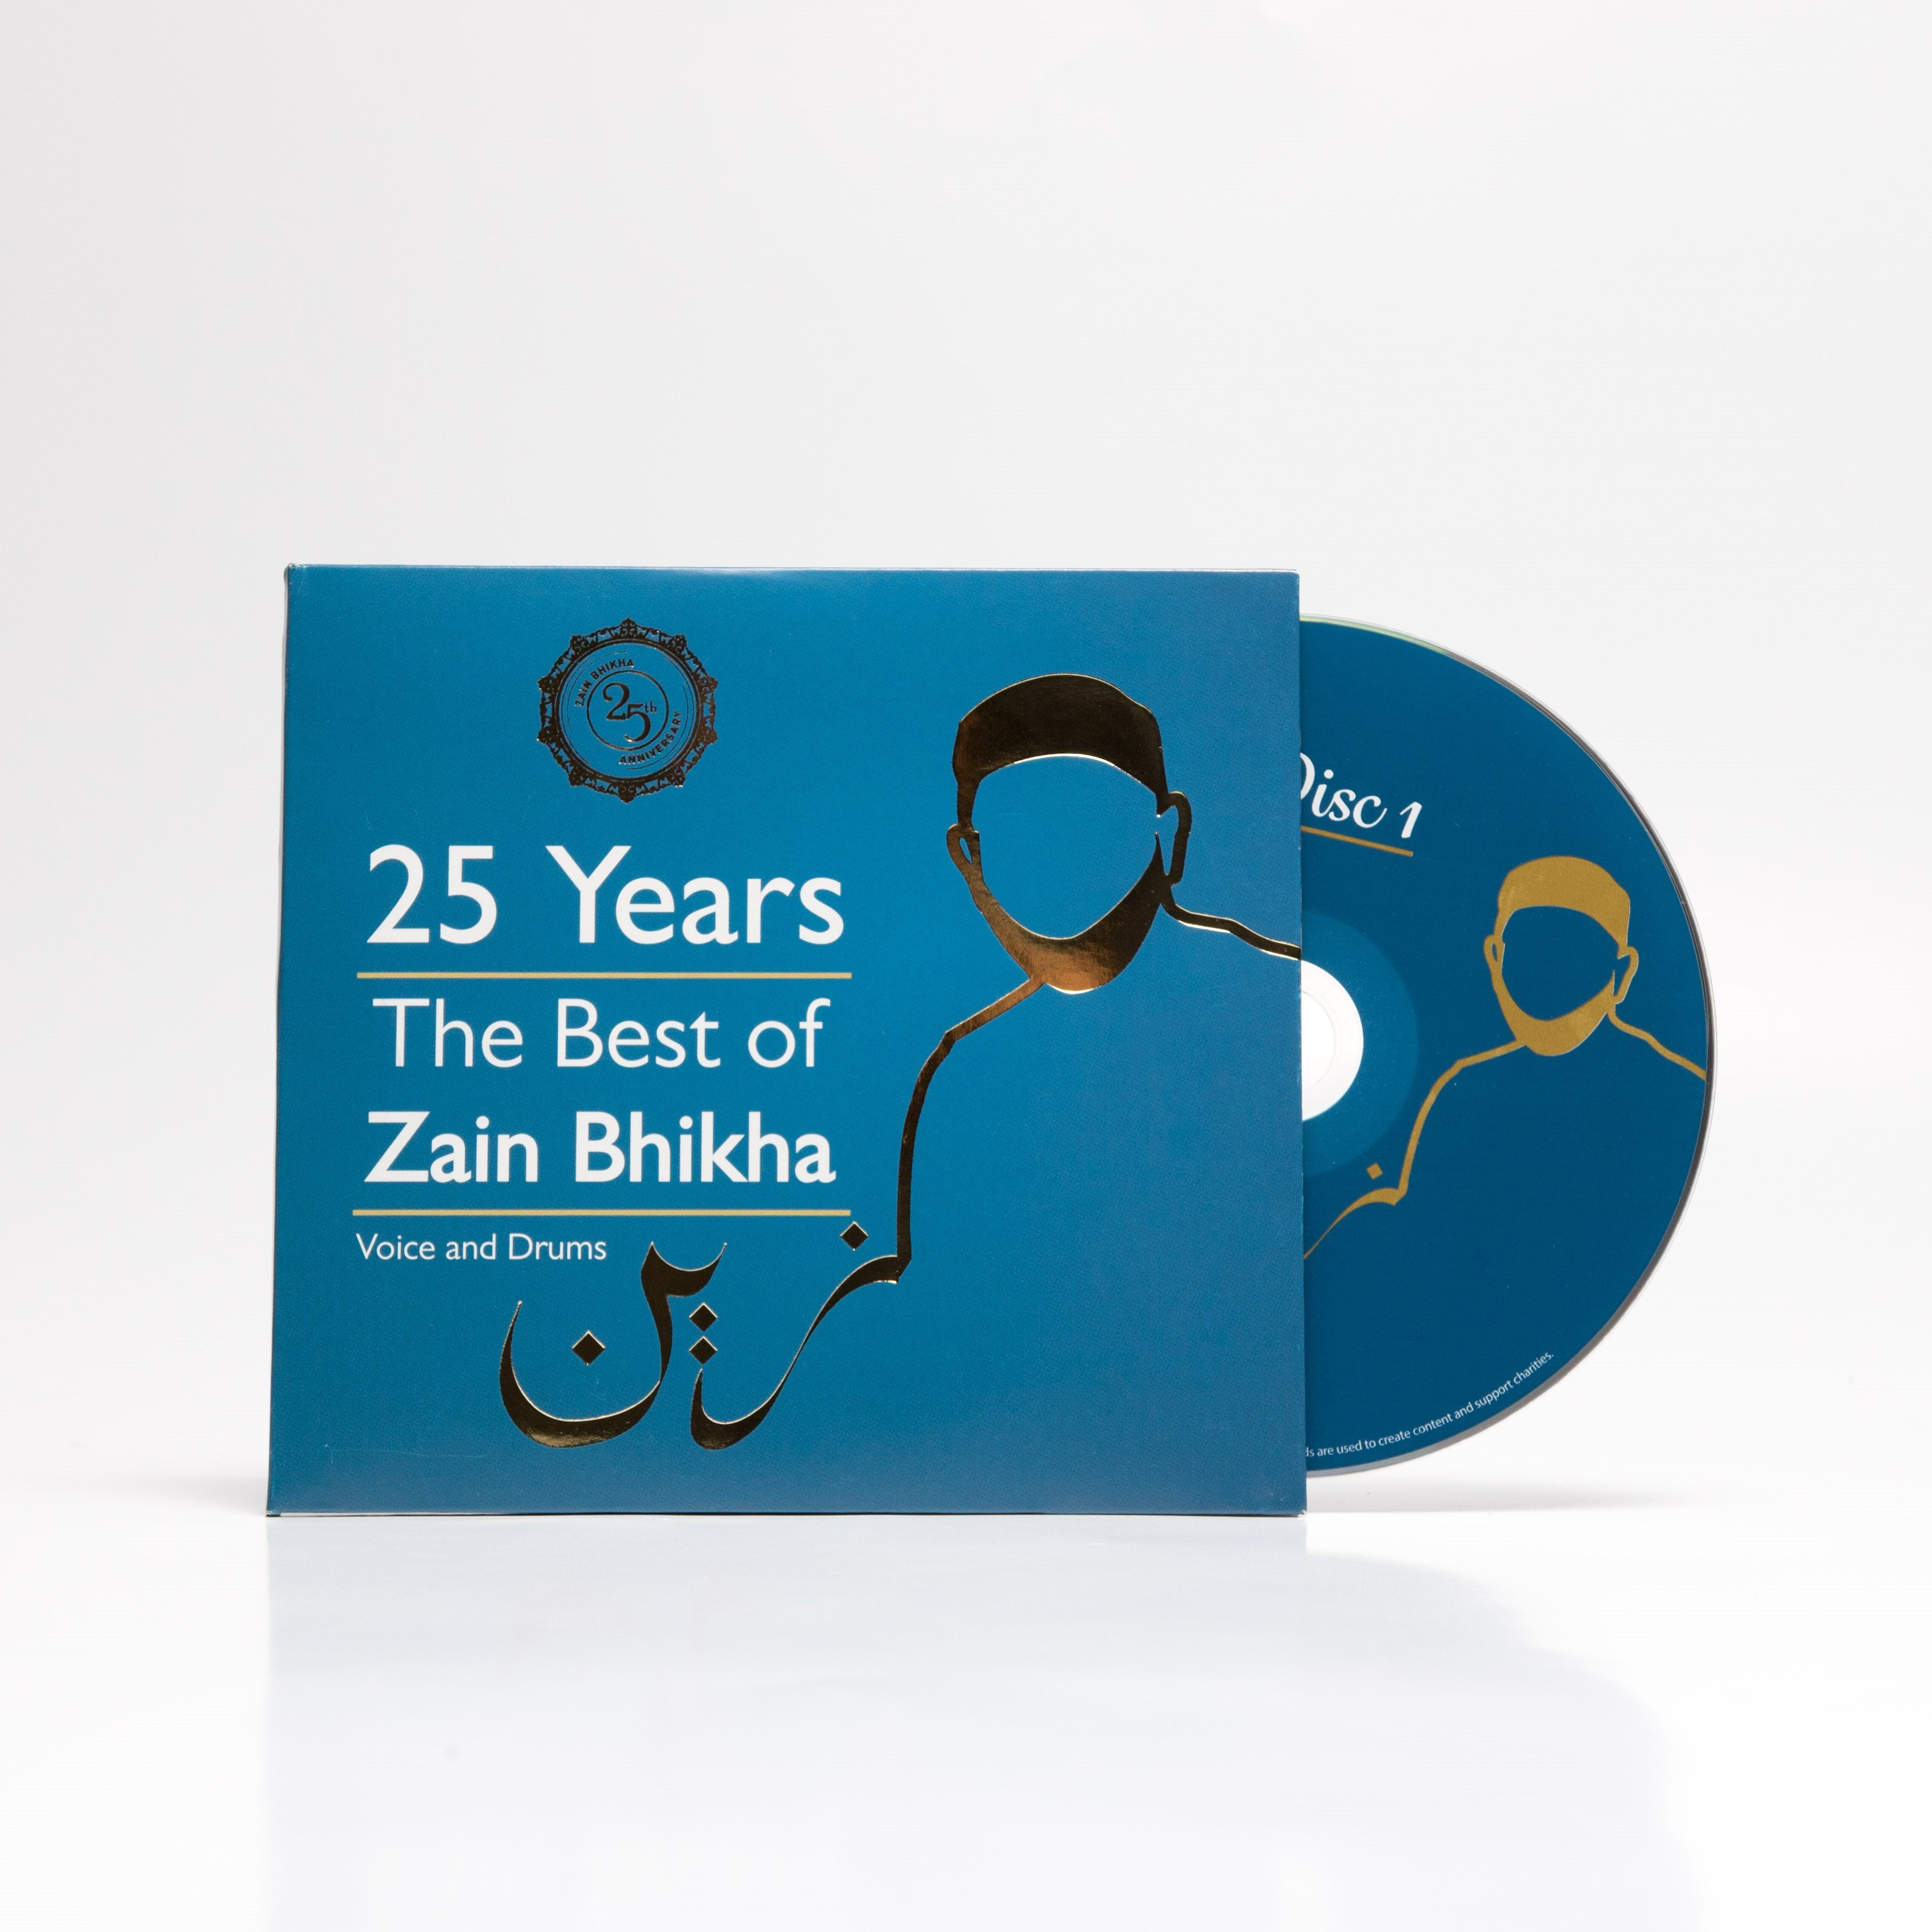 The Best of Zain Bhikha CD